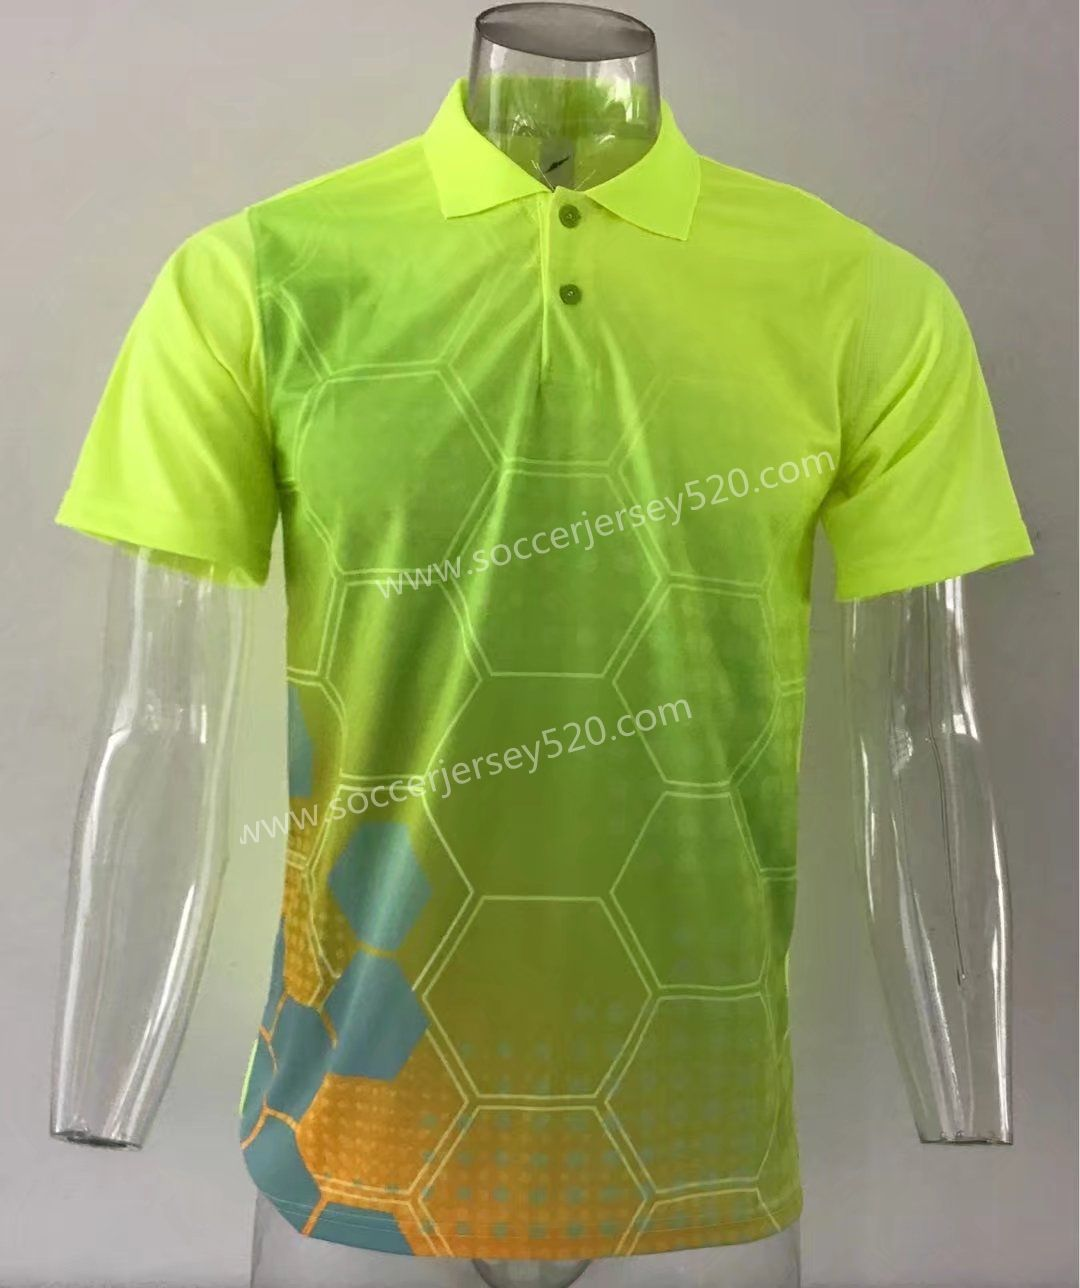 Thailand Polo Shirt Without Logo Fluorescent Green Top 21 Cheap